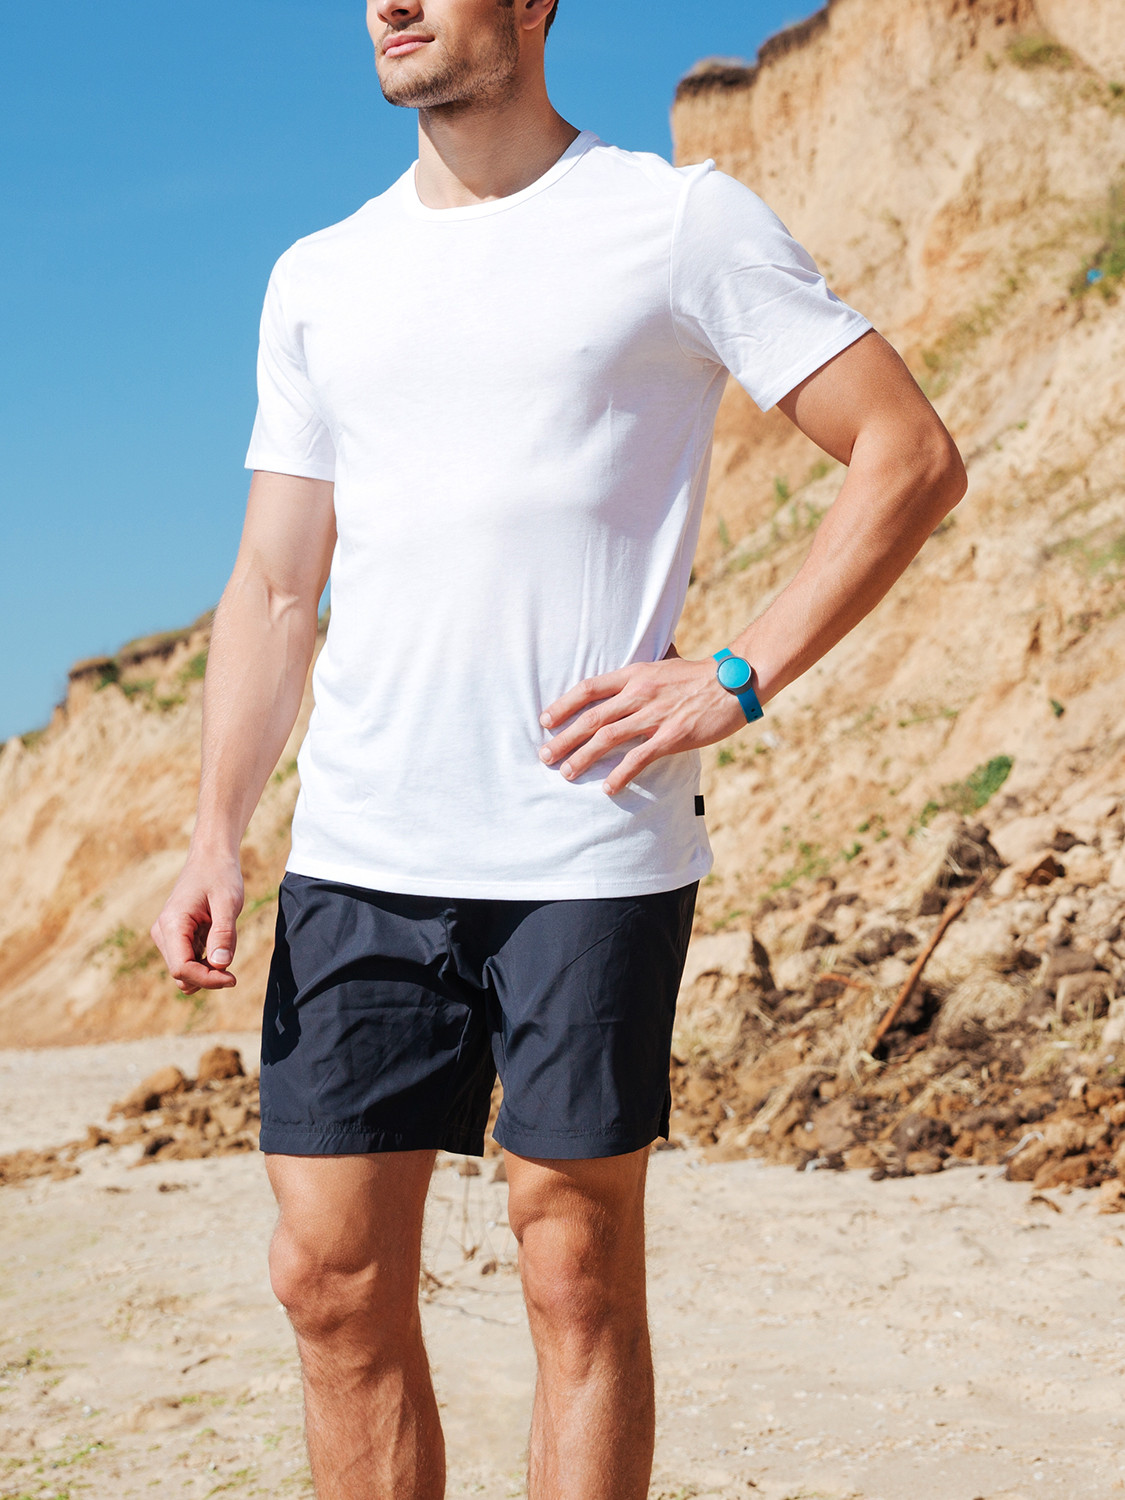 Men's outfit idea for 2021 with white crew neck t-shirt, navy swimwears, navy espadrilles. Suitable for summer.